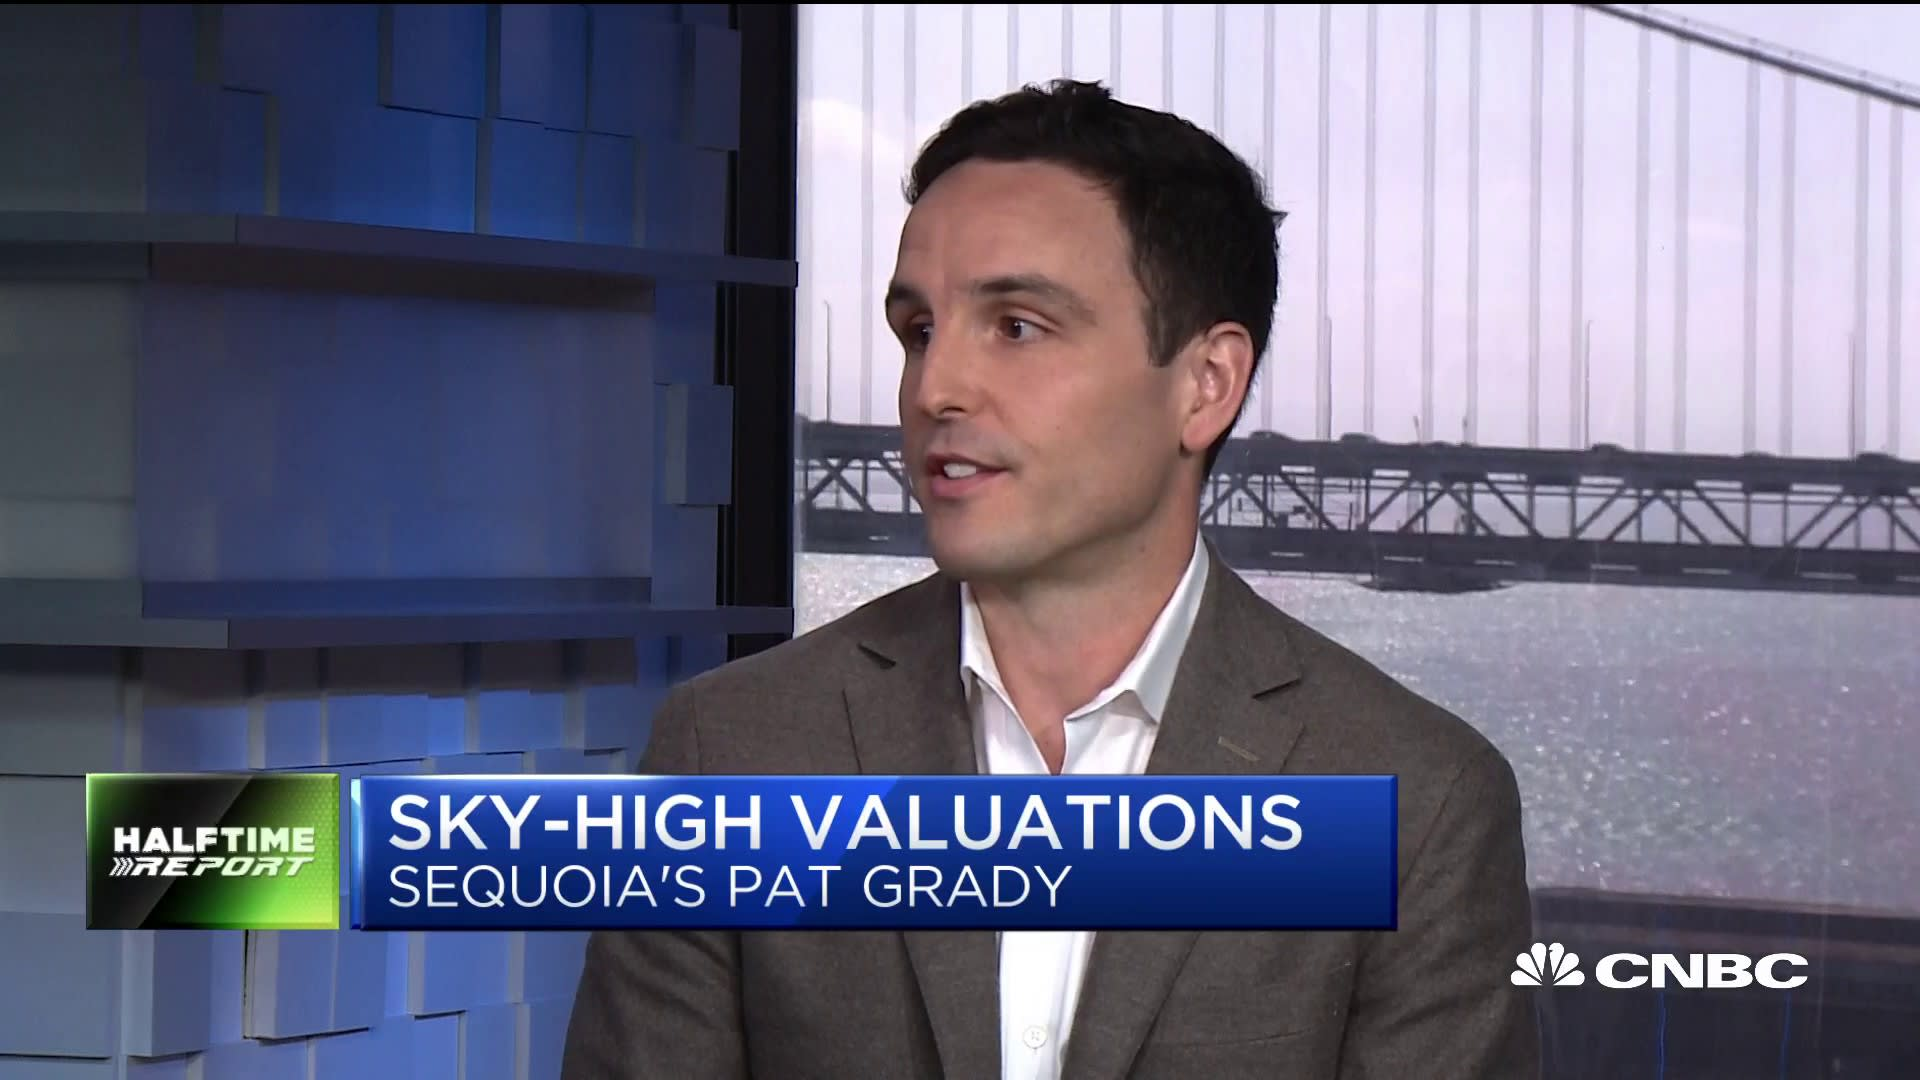 Watch CNBC's full interview with Sequoia Capital's Pat Grady